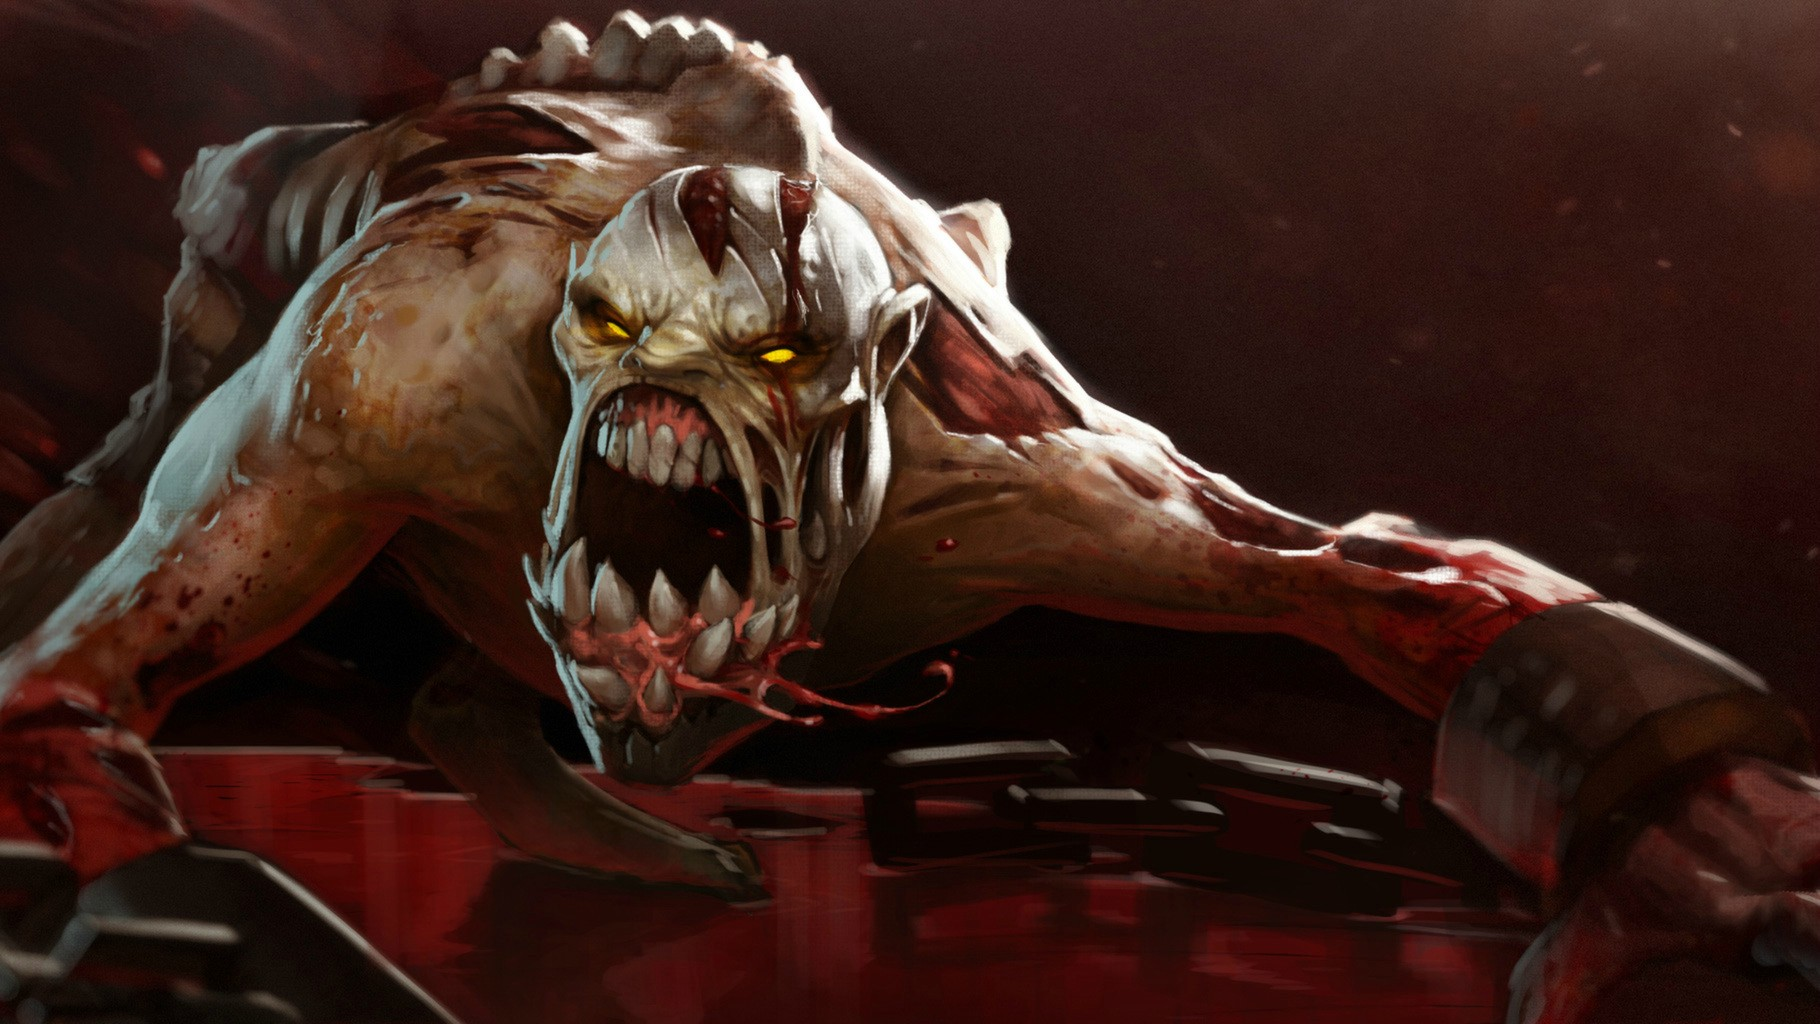 Lifestealer wallpapers and backgrounds Dota 2